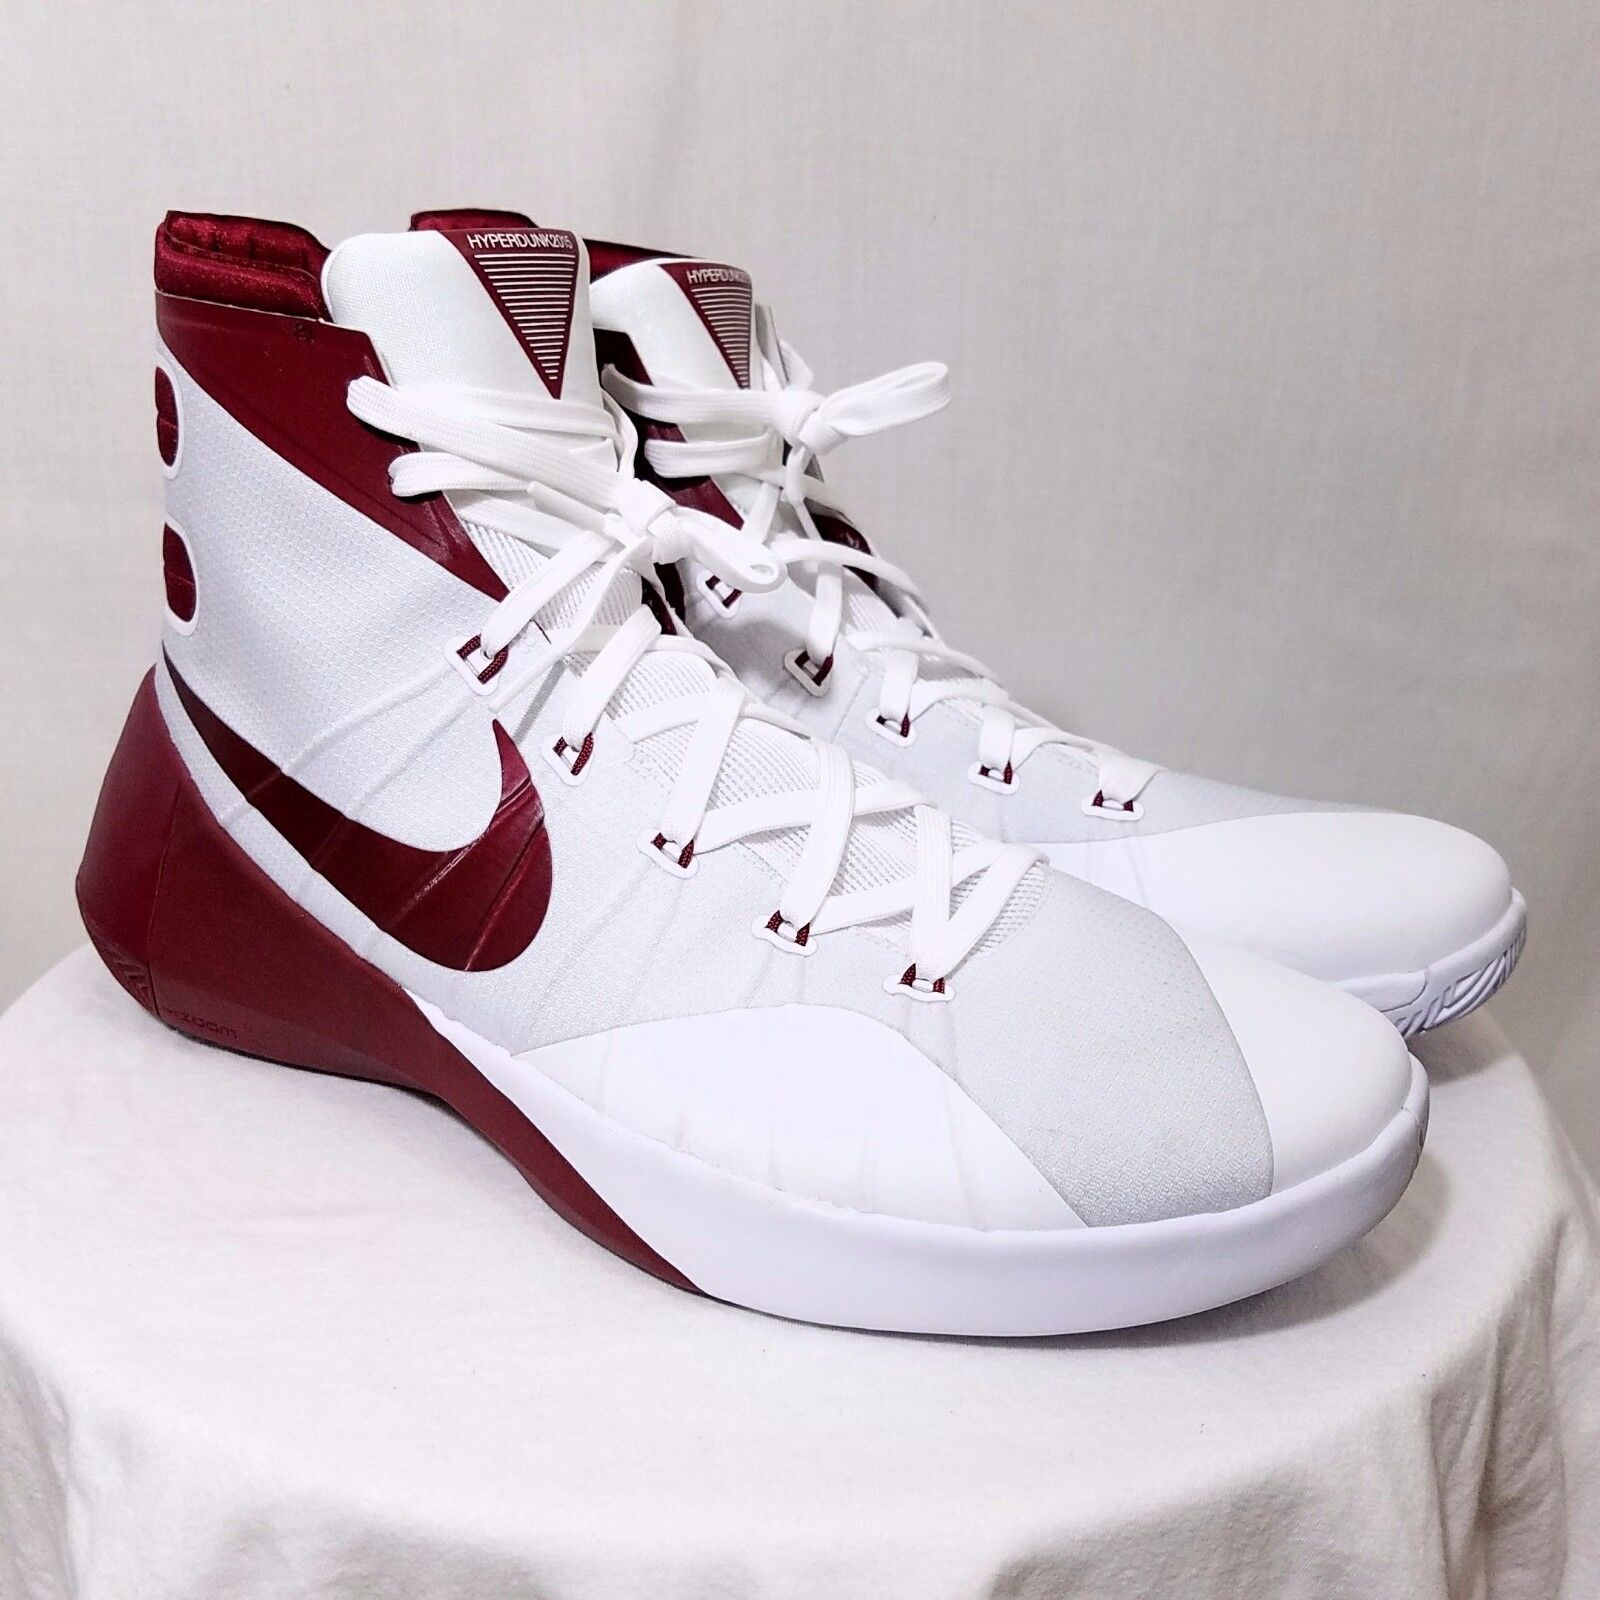 Nike Mens Hyperdunk 2015 TB Basketball Shoes 812944 161 Red US 16.5 NEW